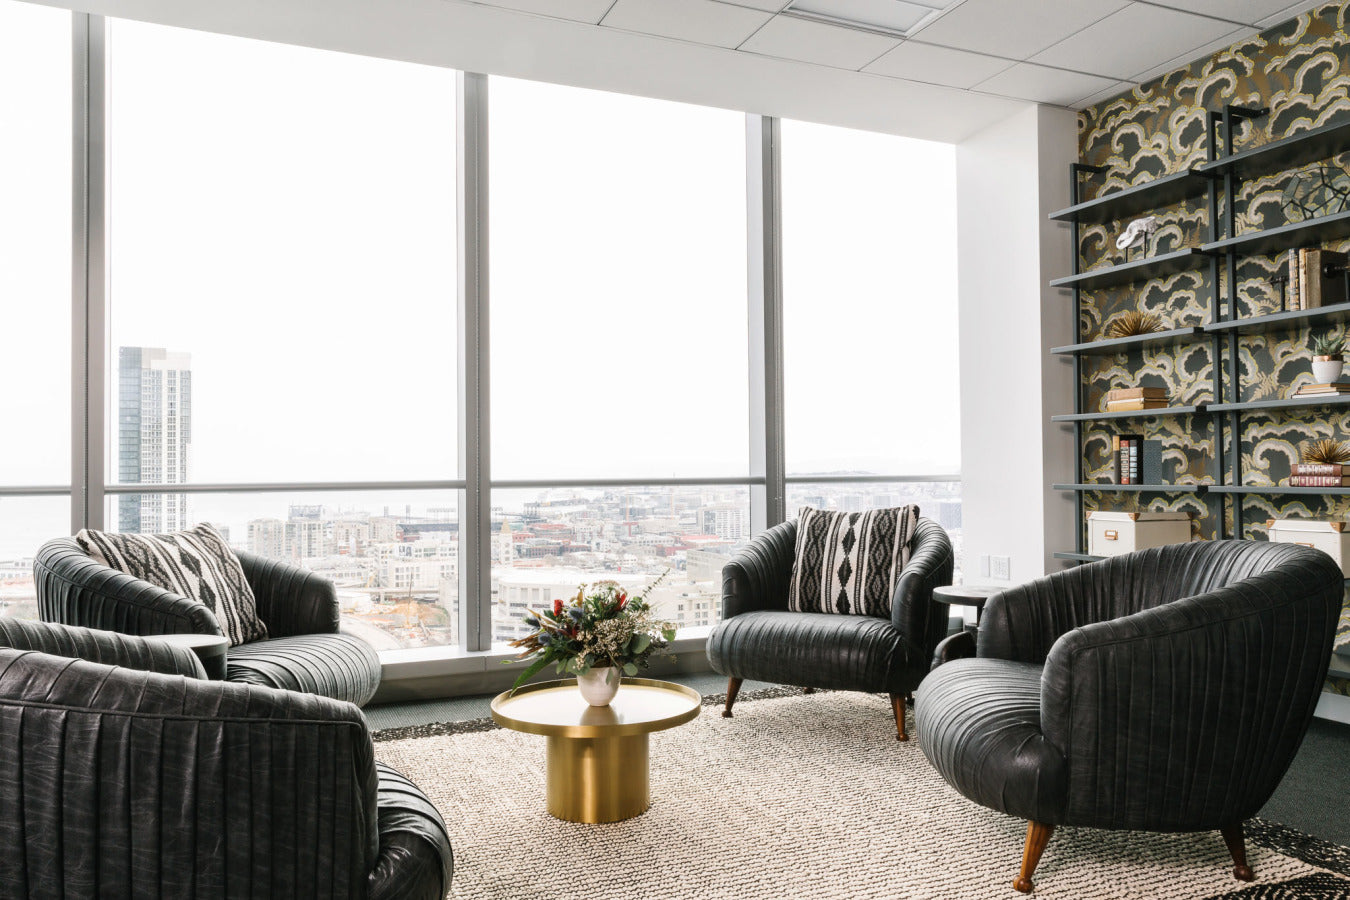 Black Rooster Decor - Homepolish: A High-Rise Office for Trinity Ventures SF - Black Glove Chair